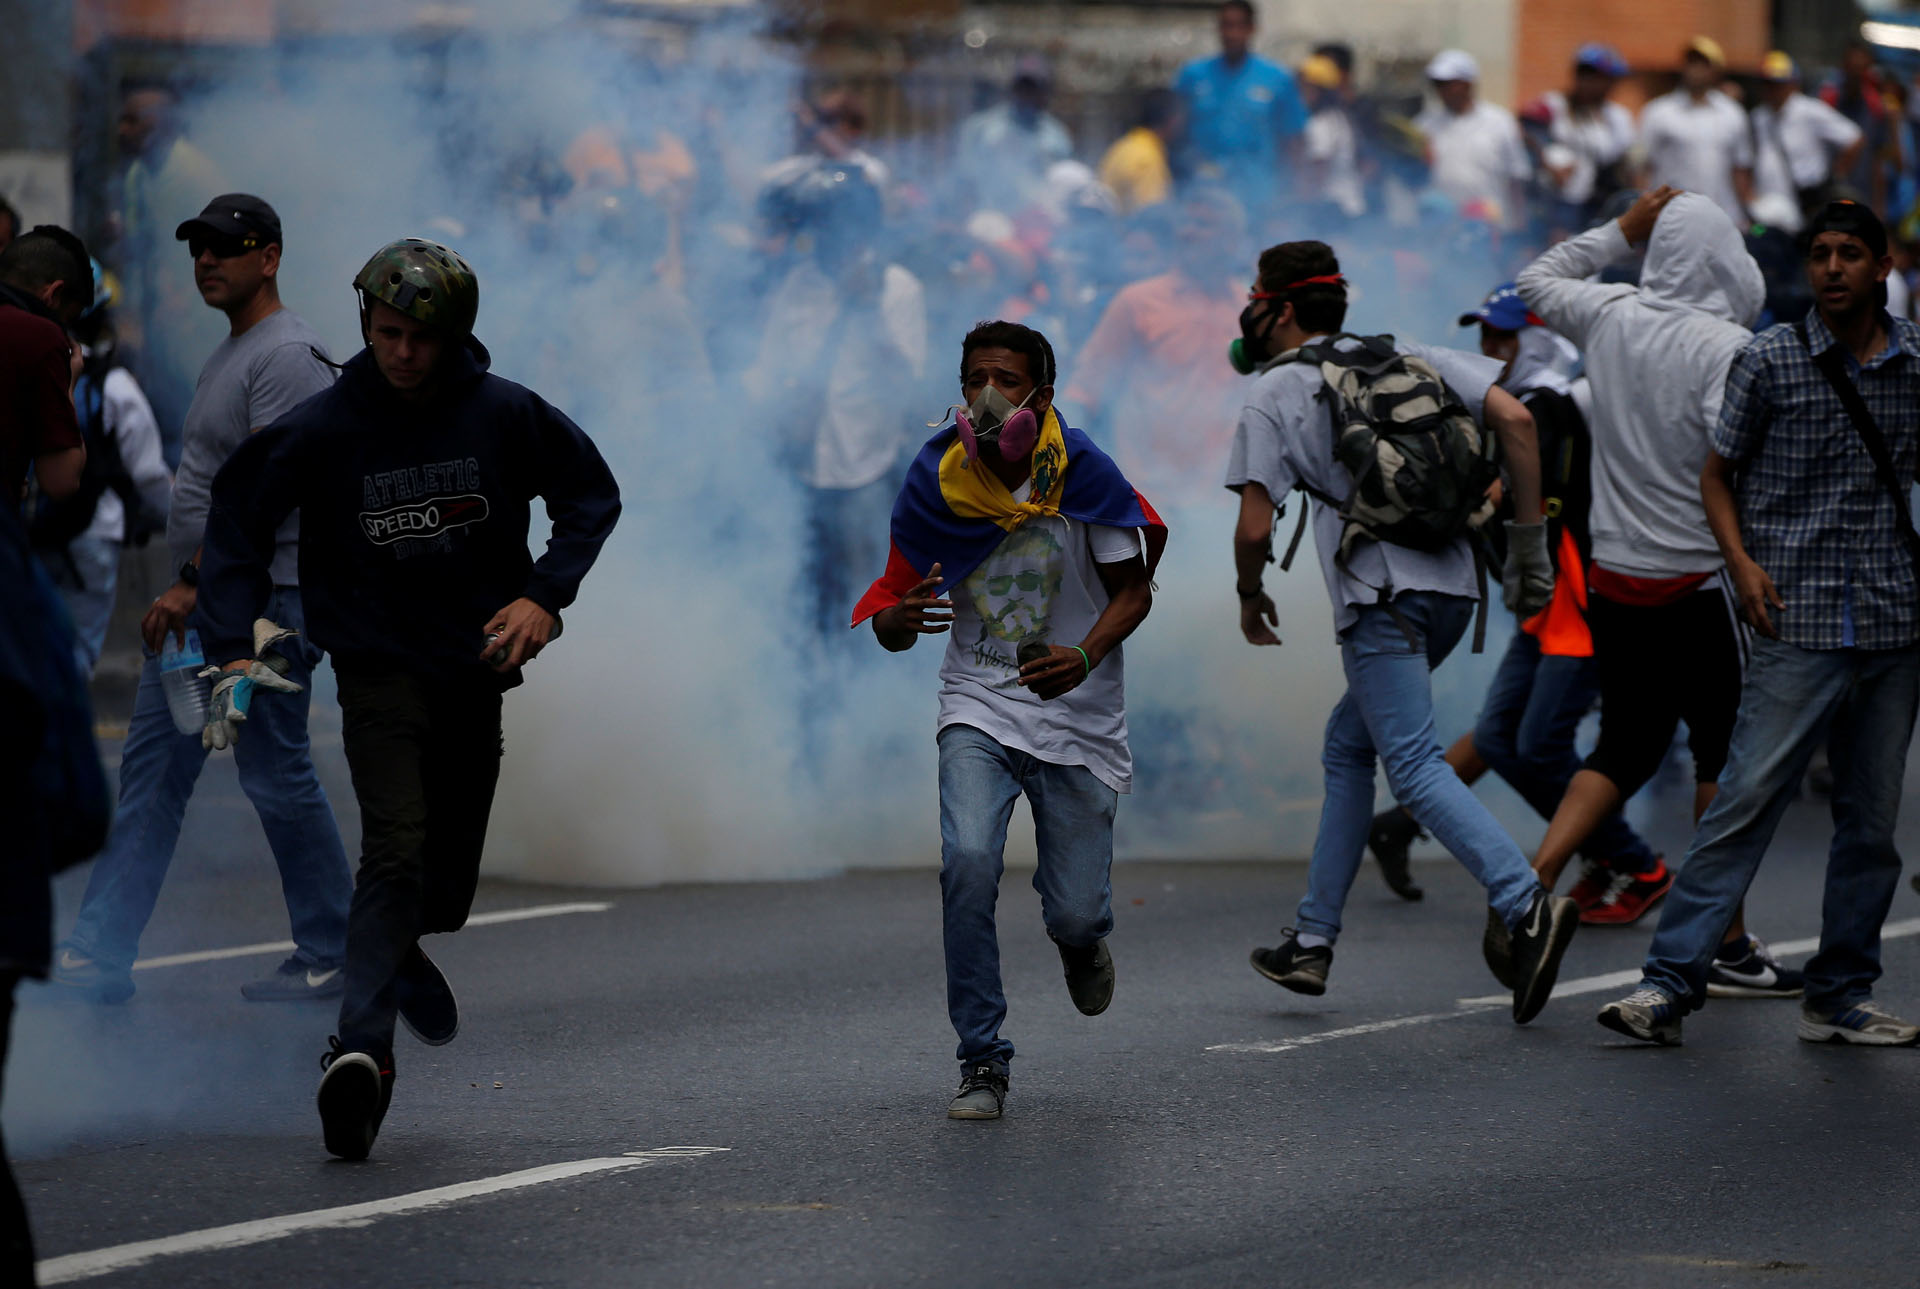 Demonstrators run away from tear gas fired by security forces during an opposition rally in Caracas, Venezuela April 6, 2017. REUTERS/Carlos Garcia Rawlins